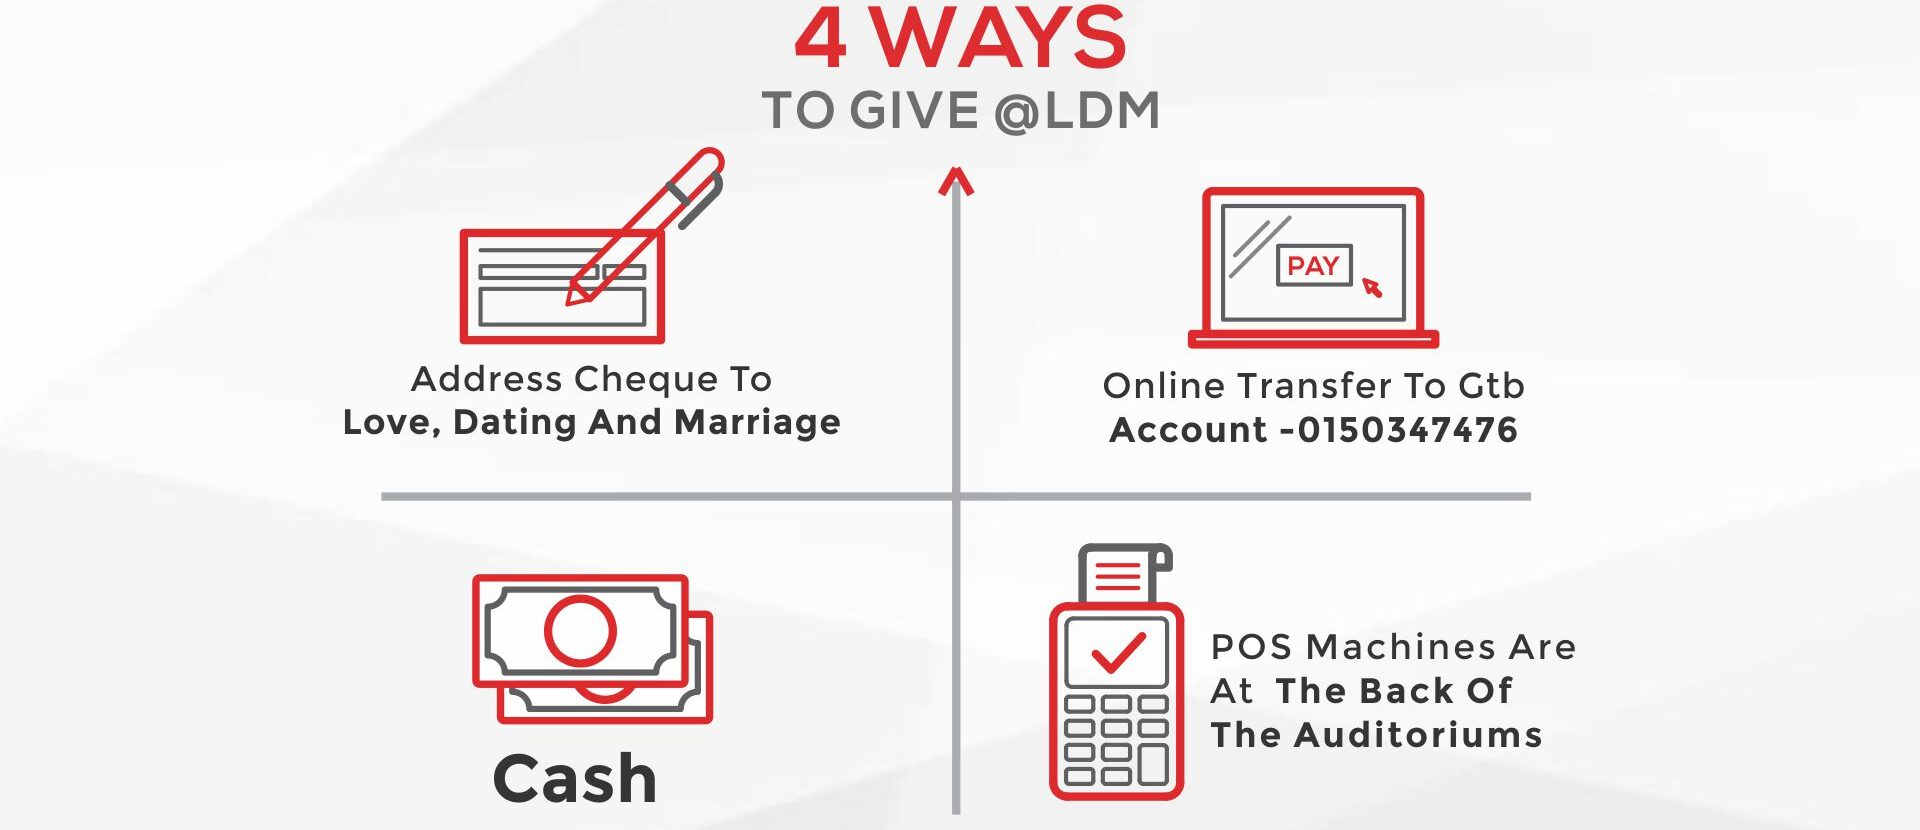 ldm four way to give